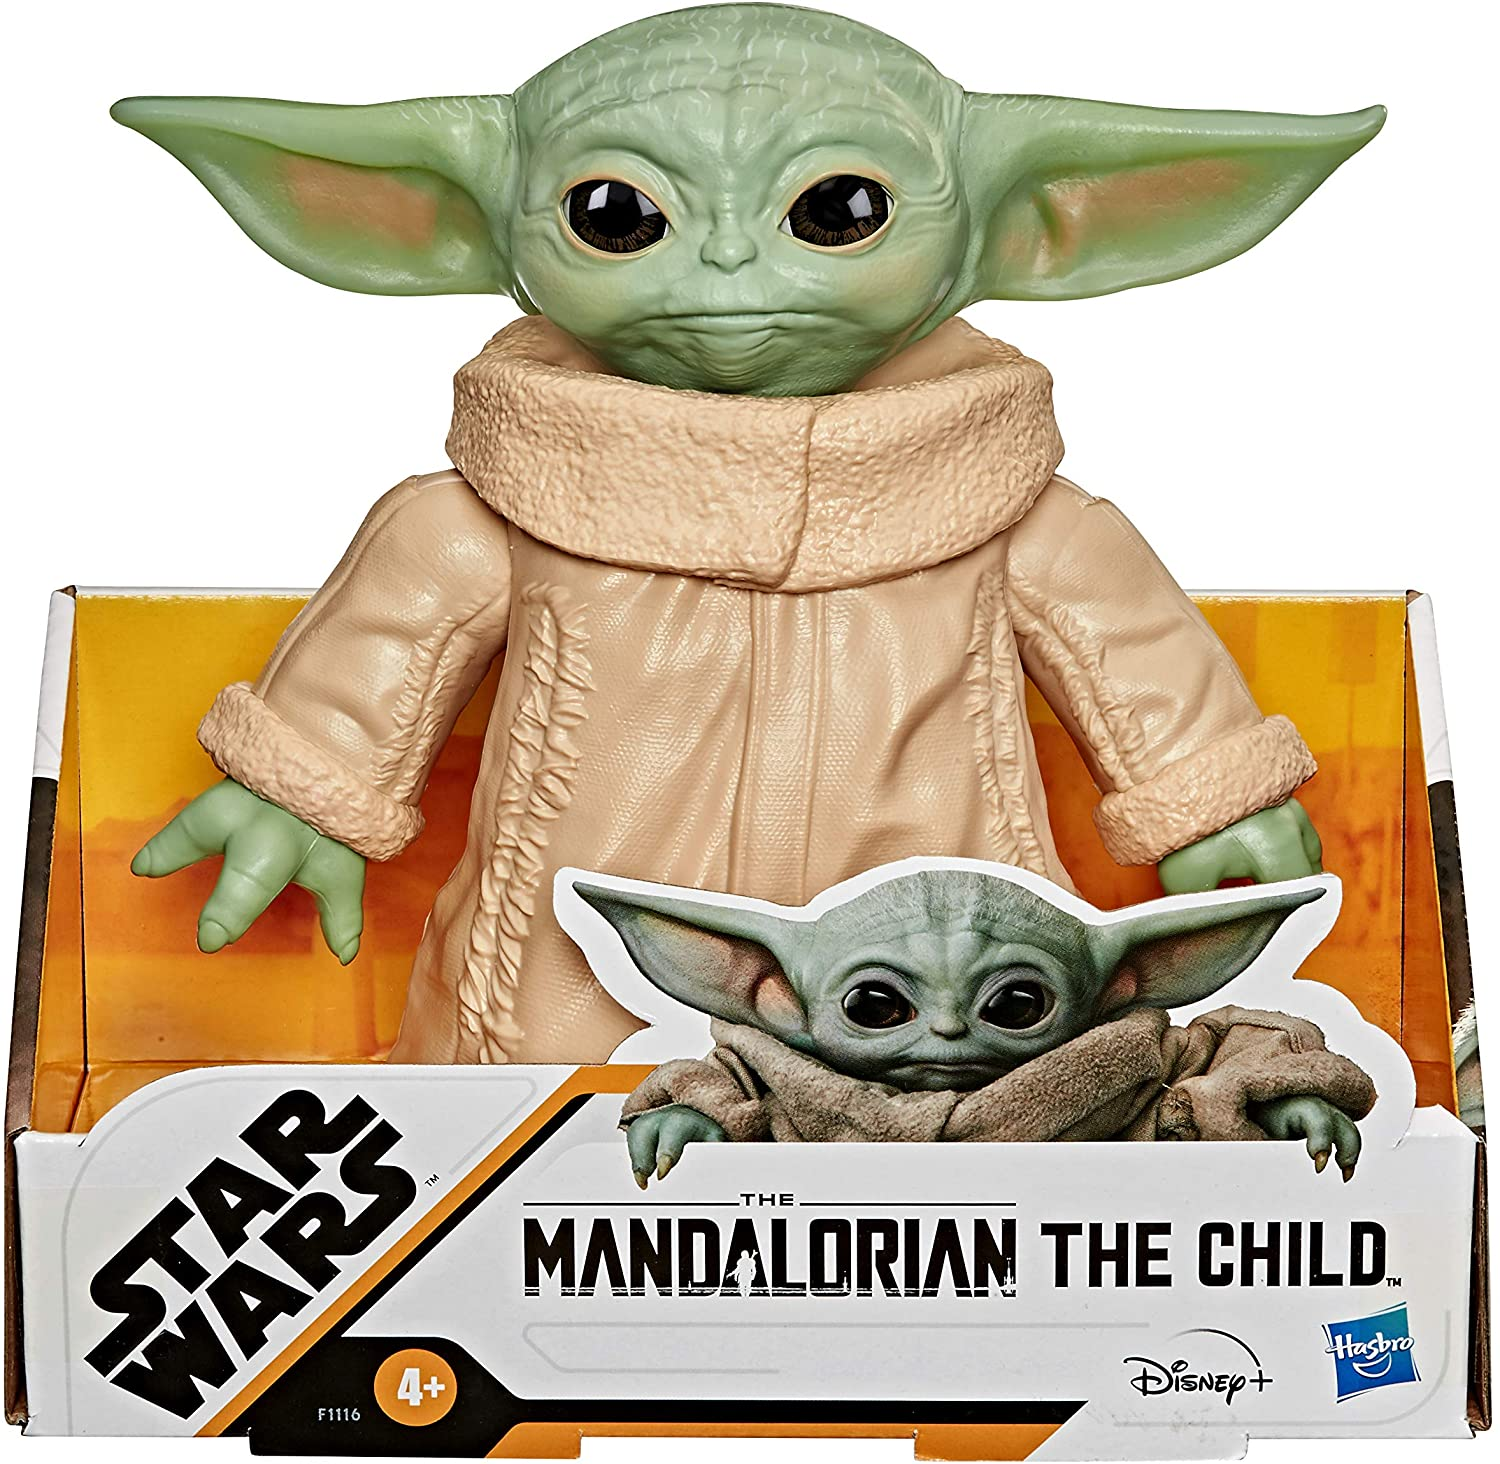 Star Wars The Mandalorian The Child Baby Yoda